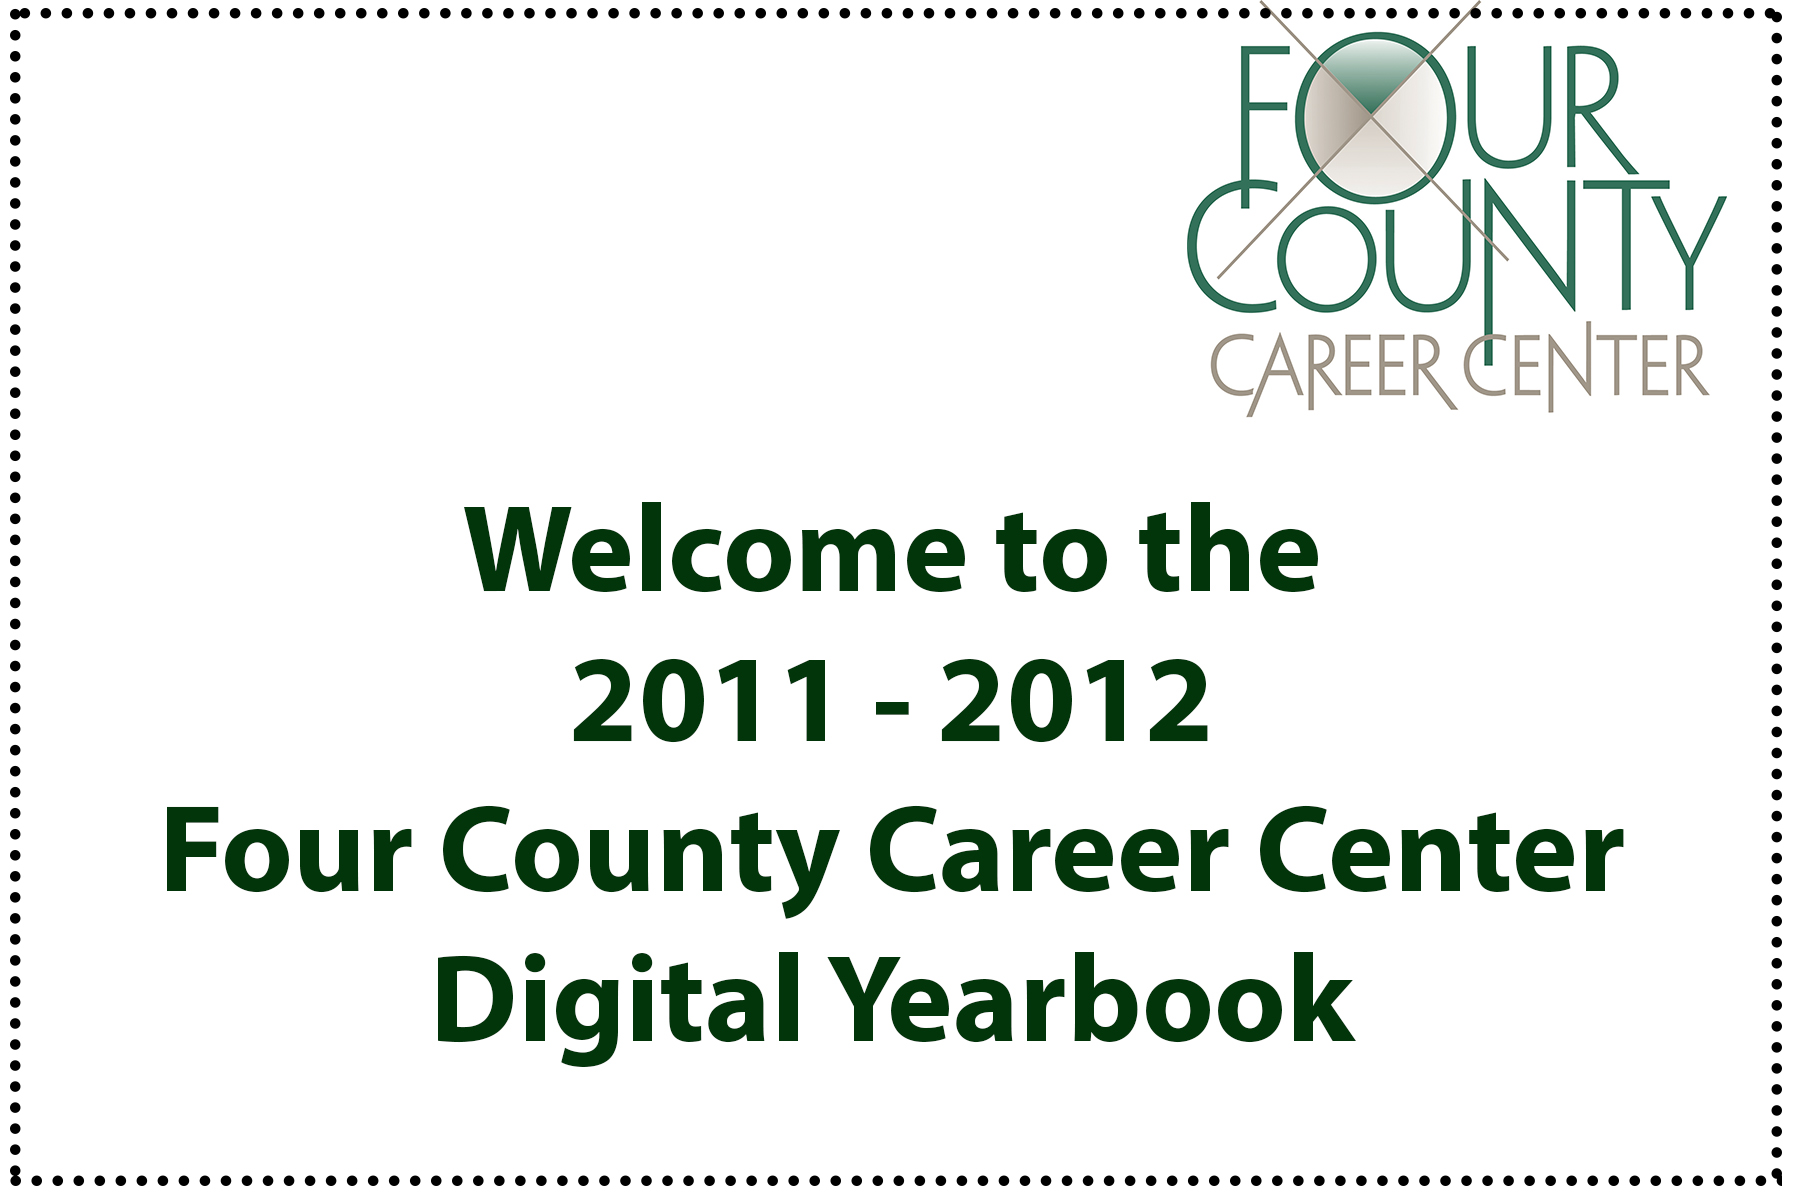 Image for: 2011-2012 Yearbook